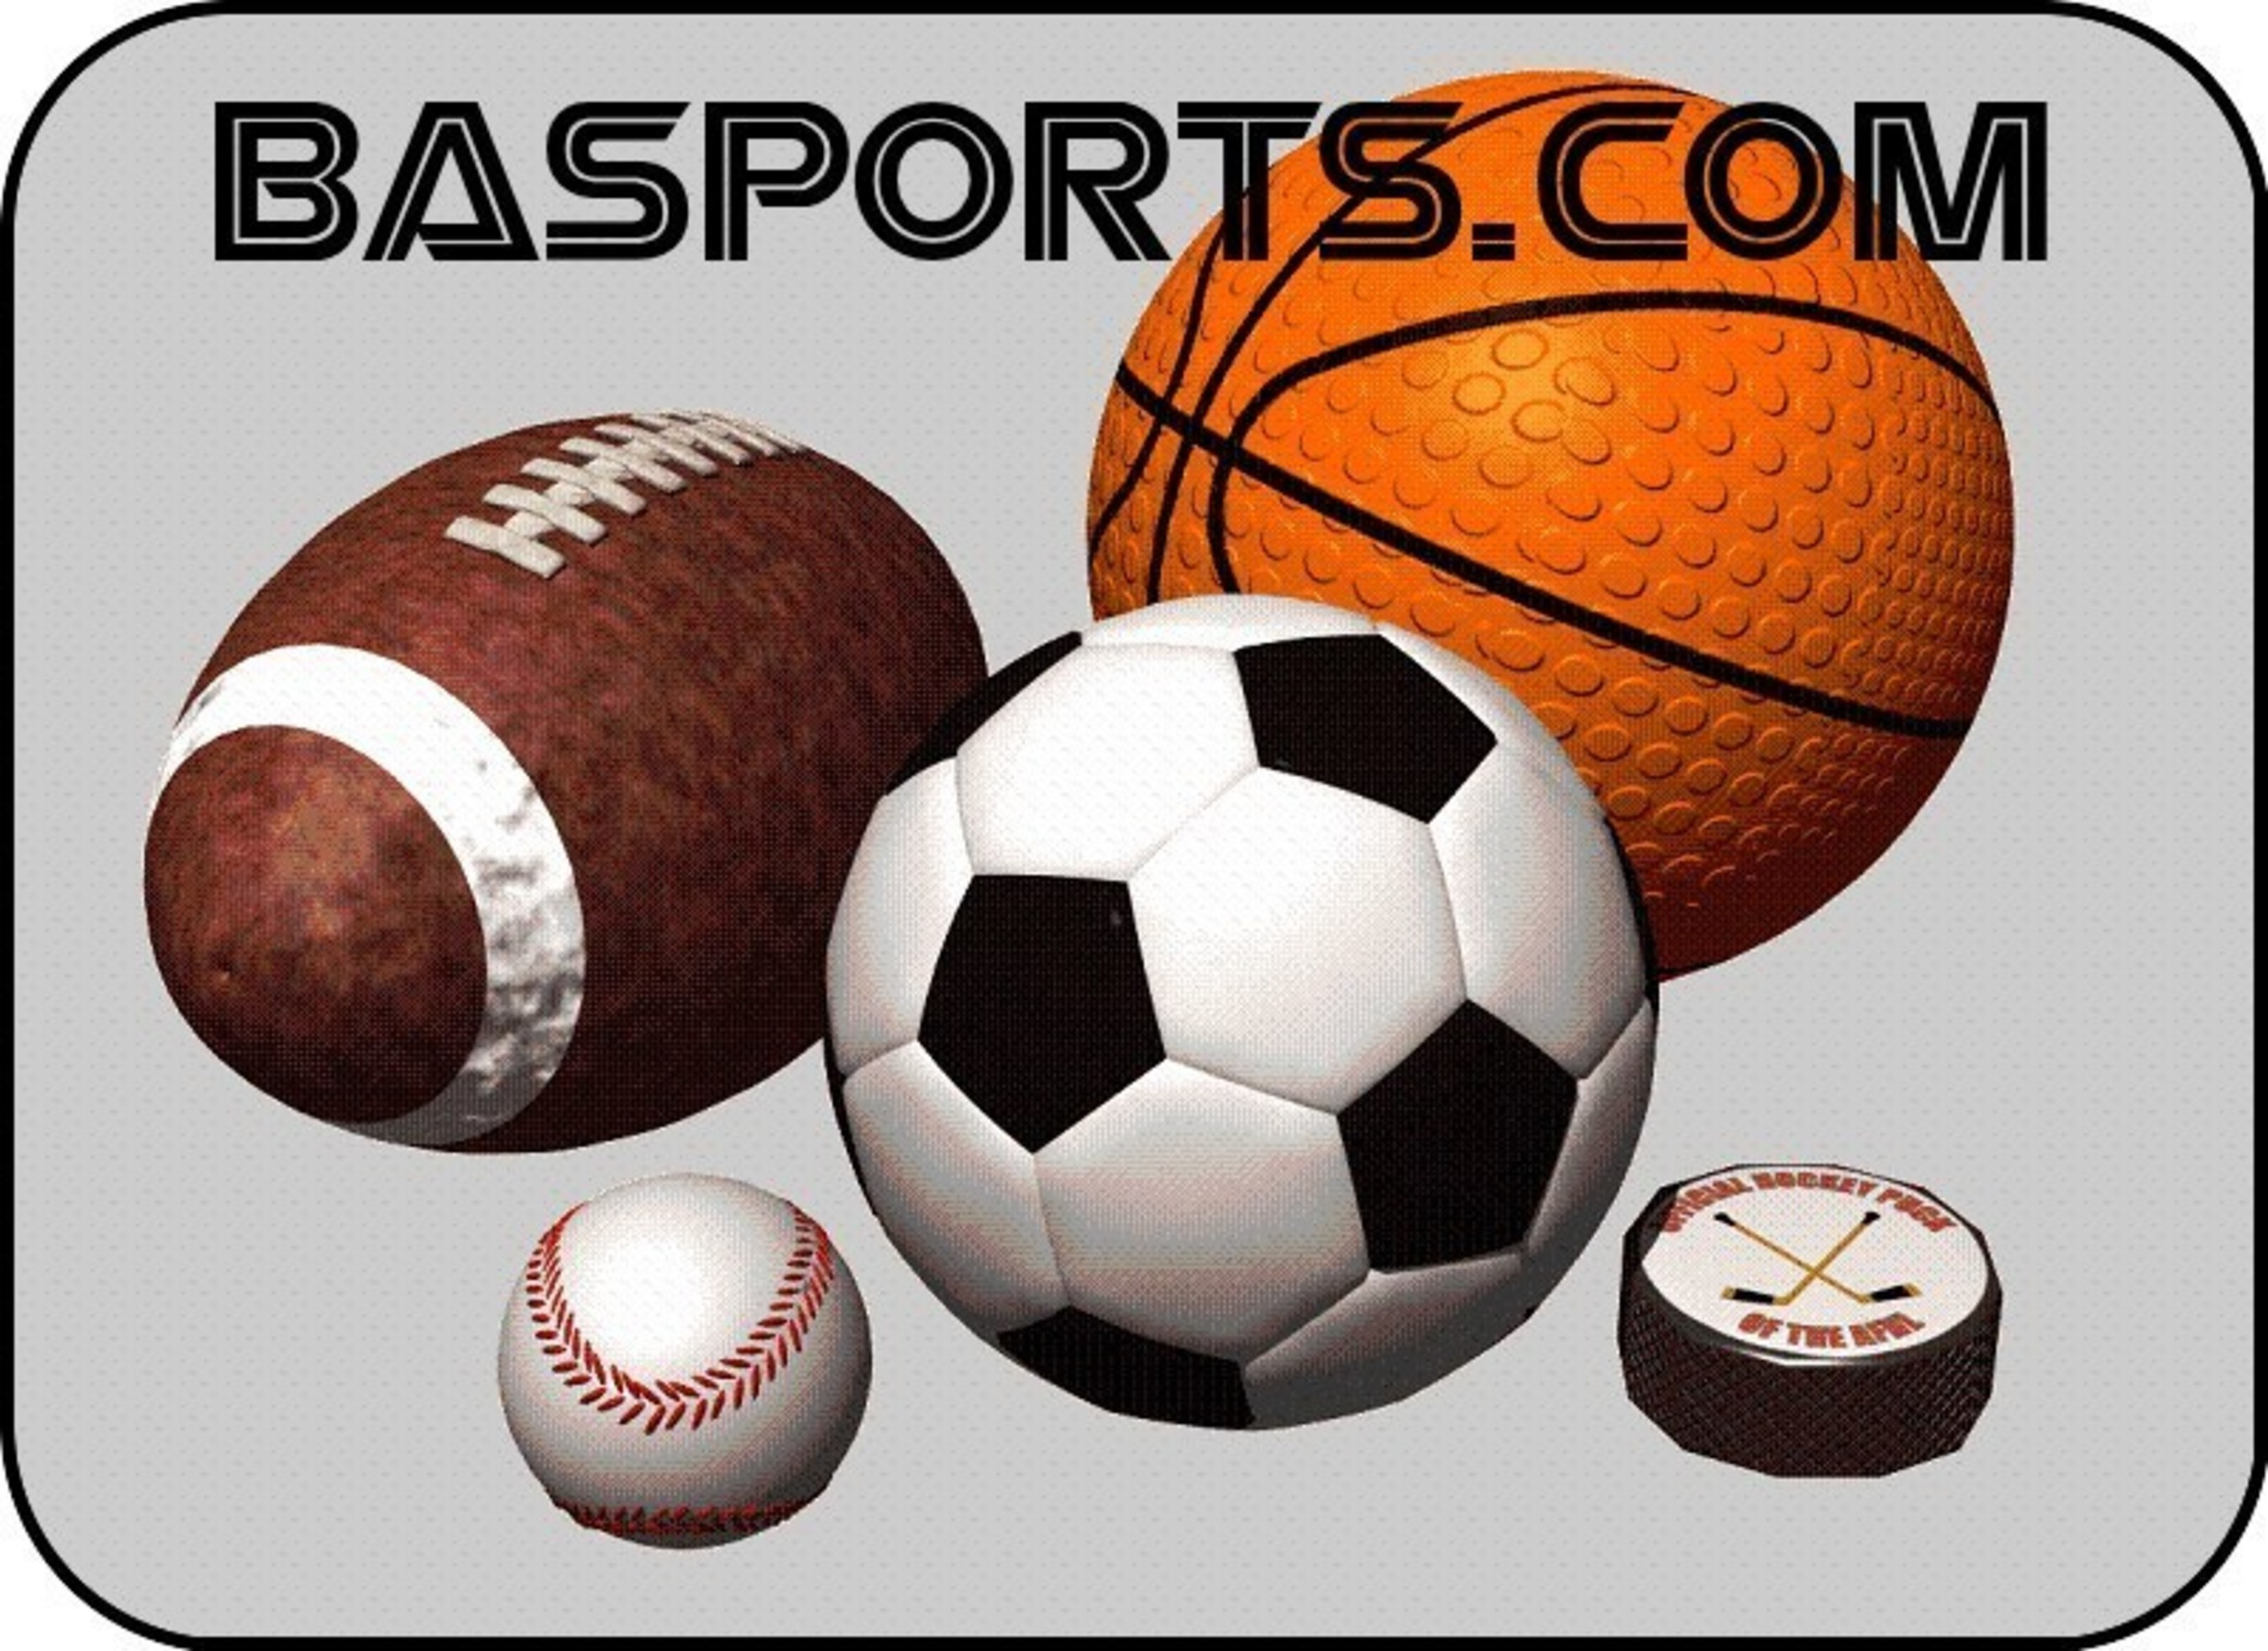 BASports.com: the world's premier sports-information service